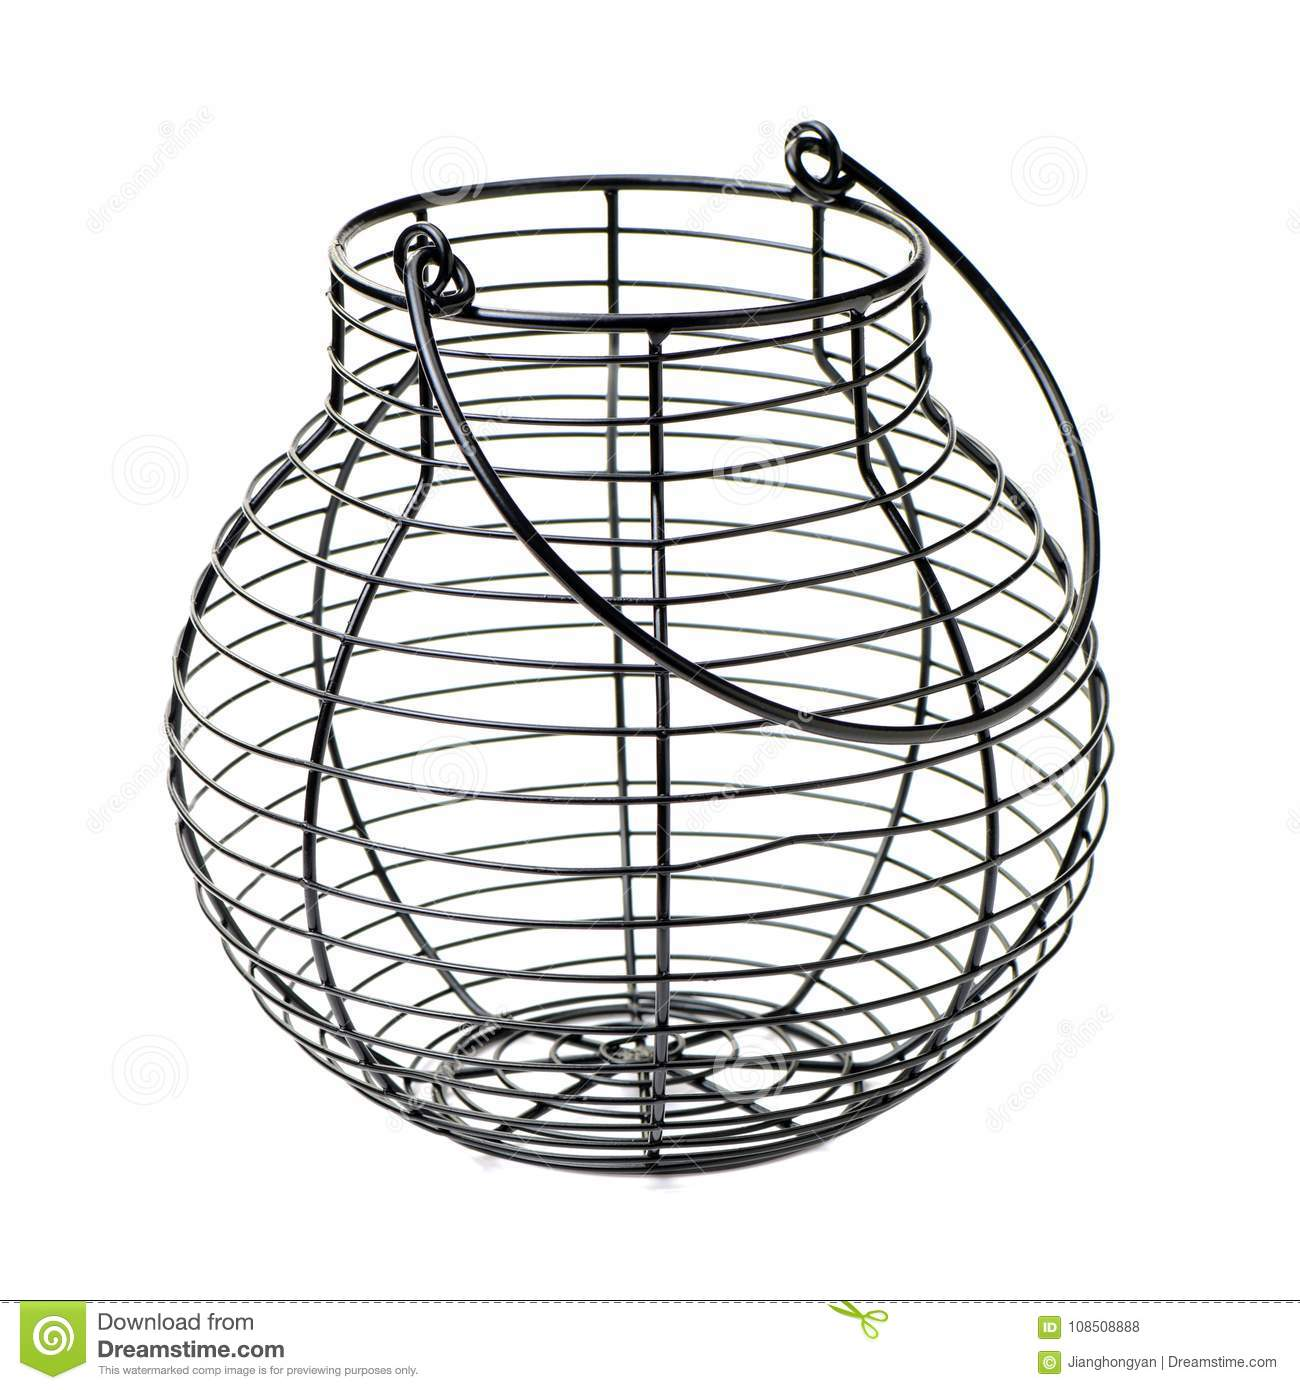 Wire egg basket stock photo. Image of kitchenware, carrier - 108508888